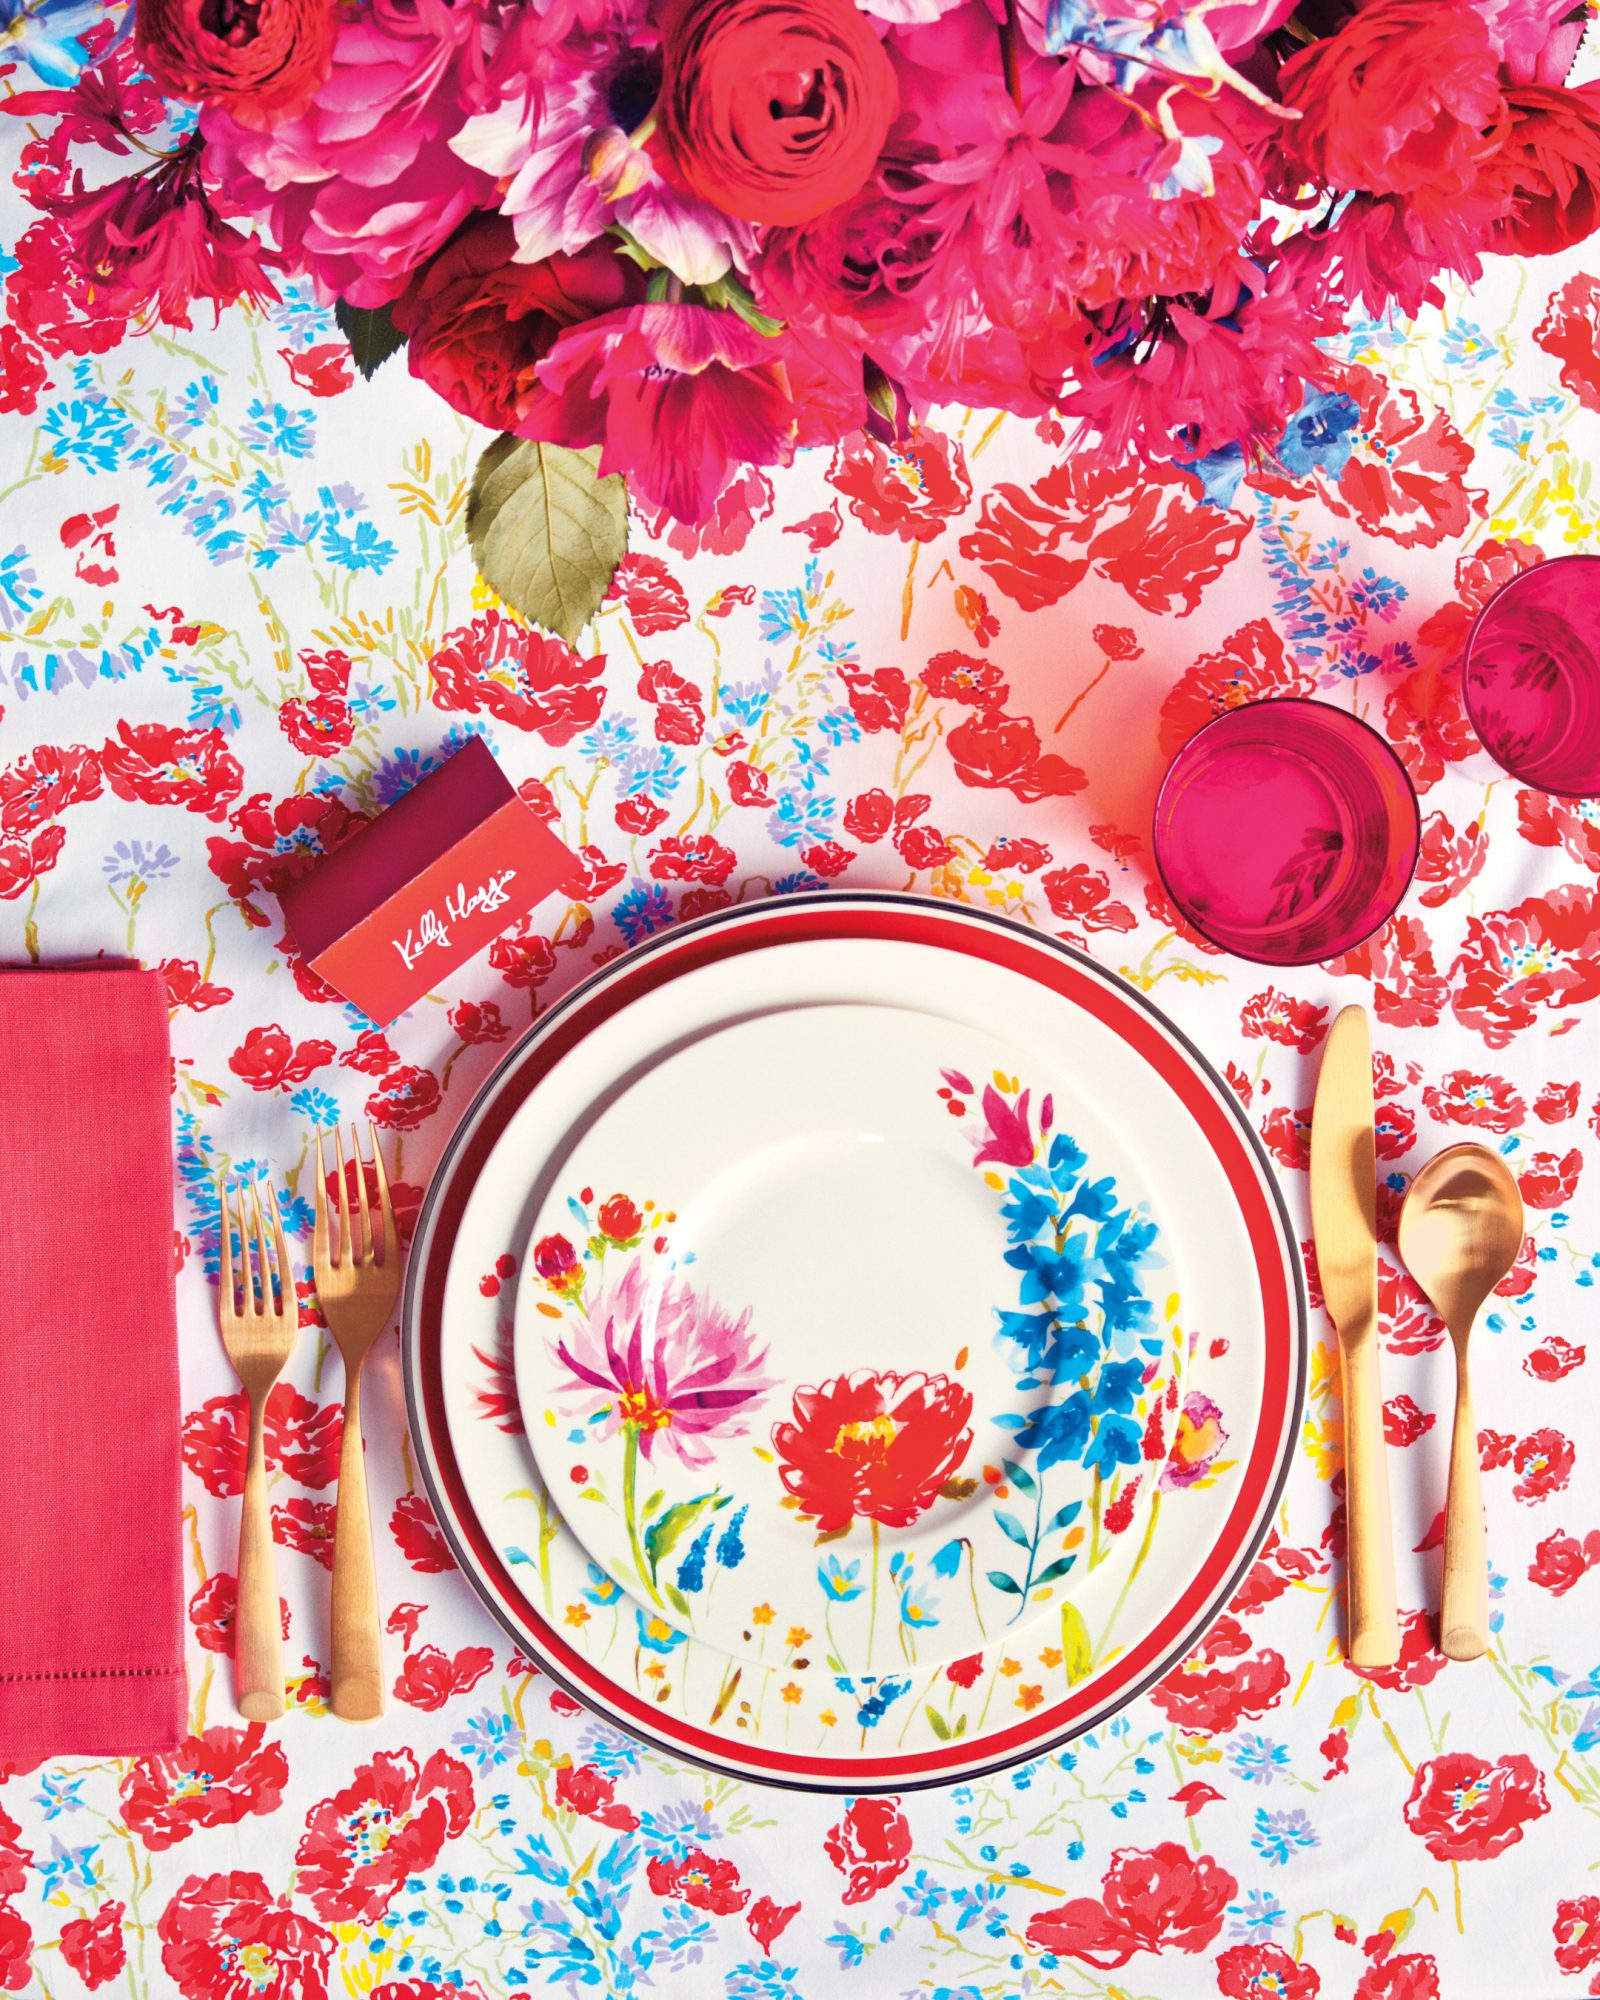 floral-red-place-setting-0020-d111716.jpg